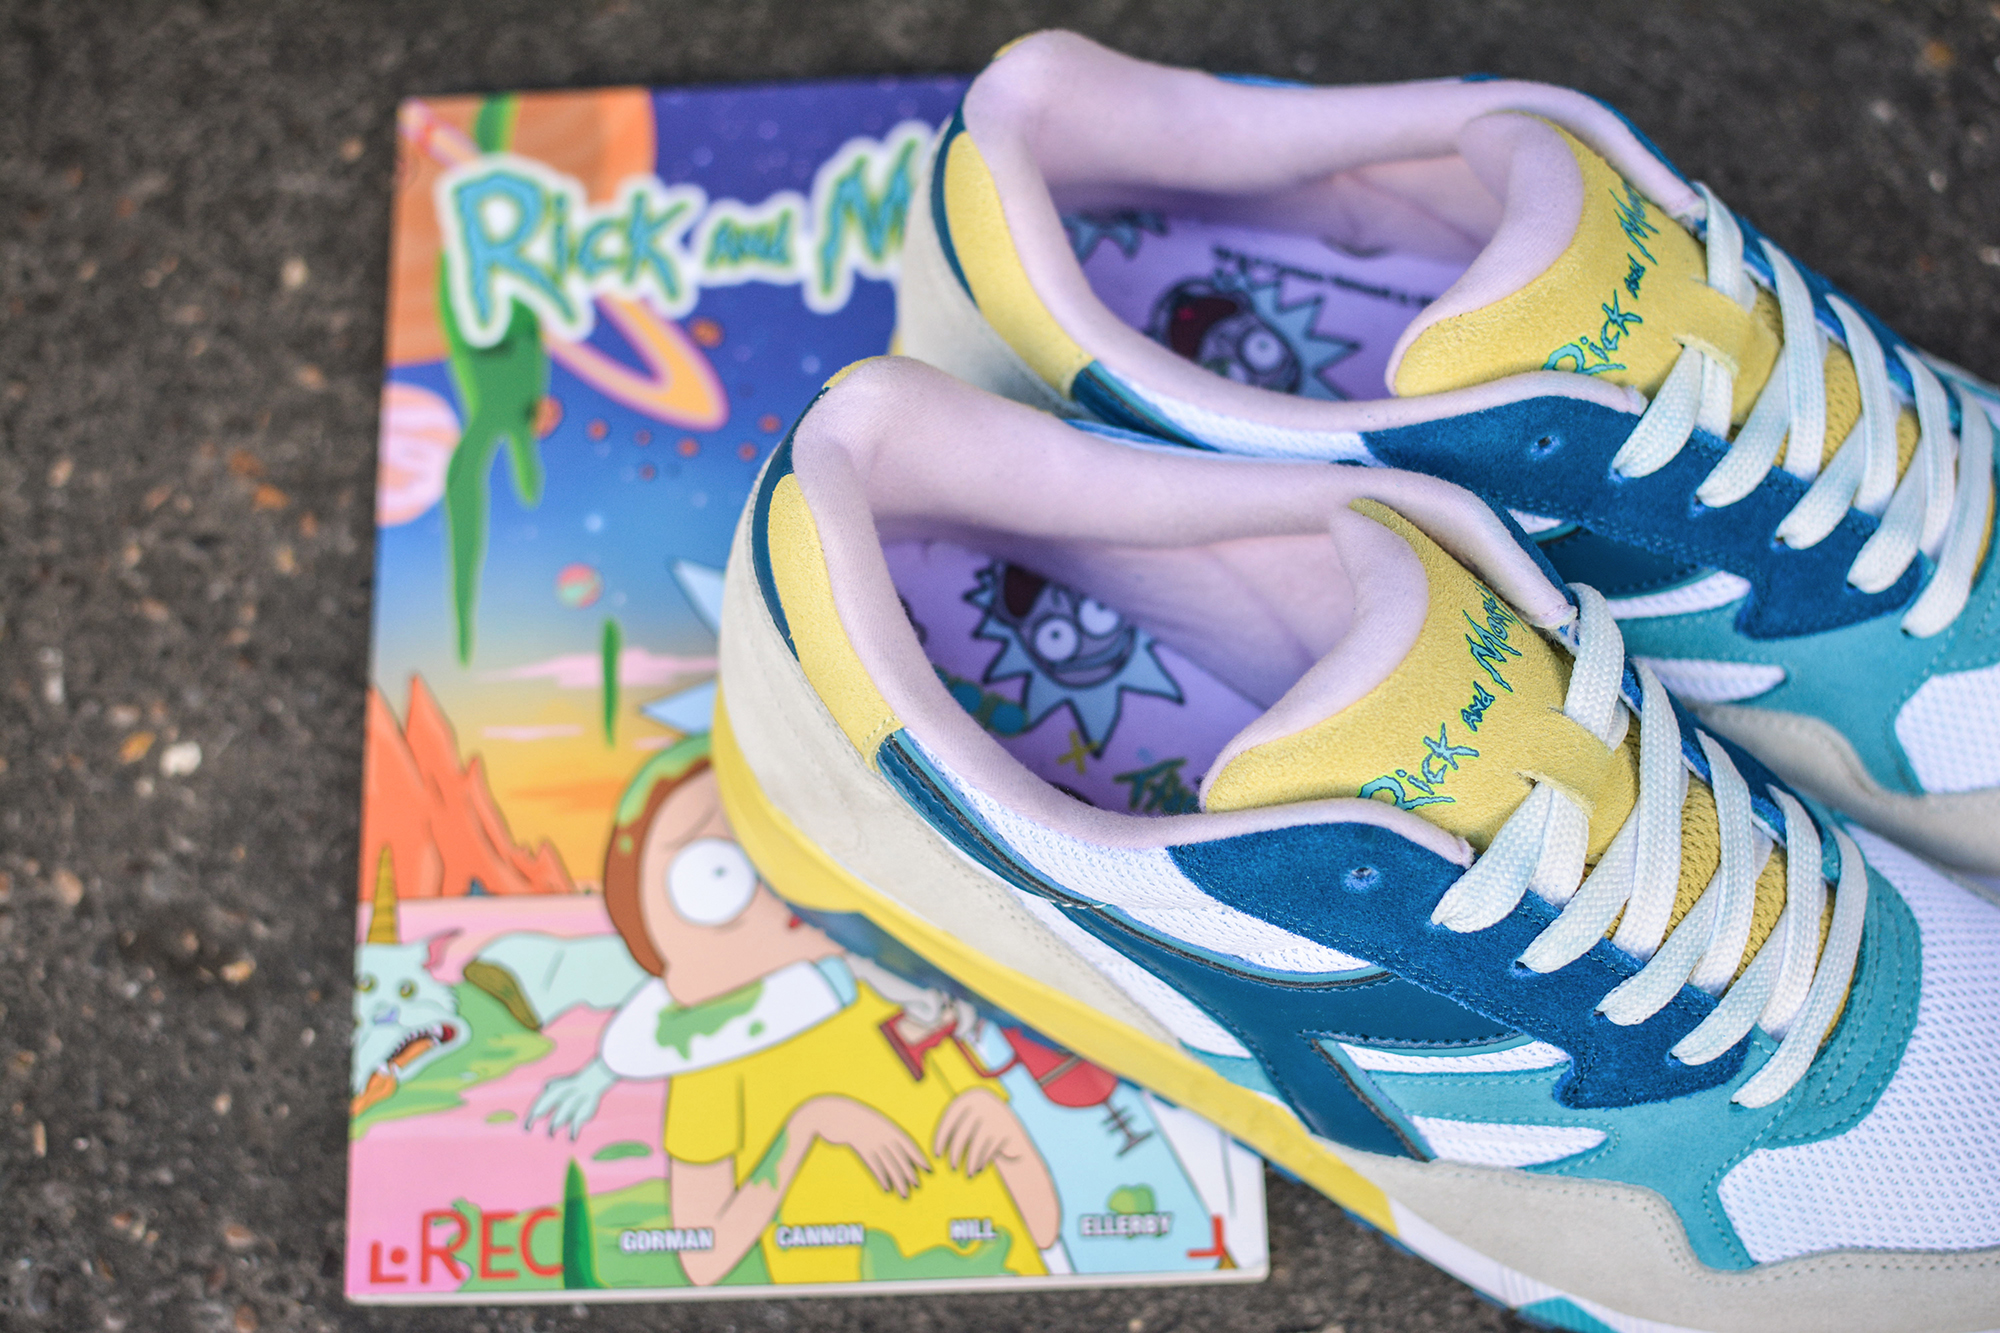 DIADORA x RICK AND MORTY EXCLUSIVE WhyNotMag